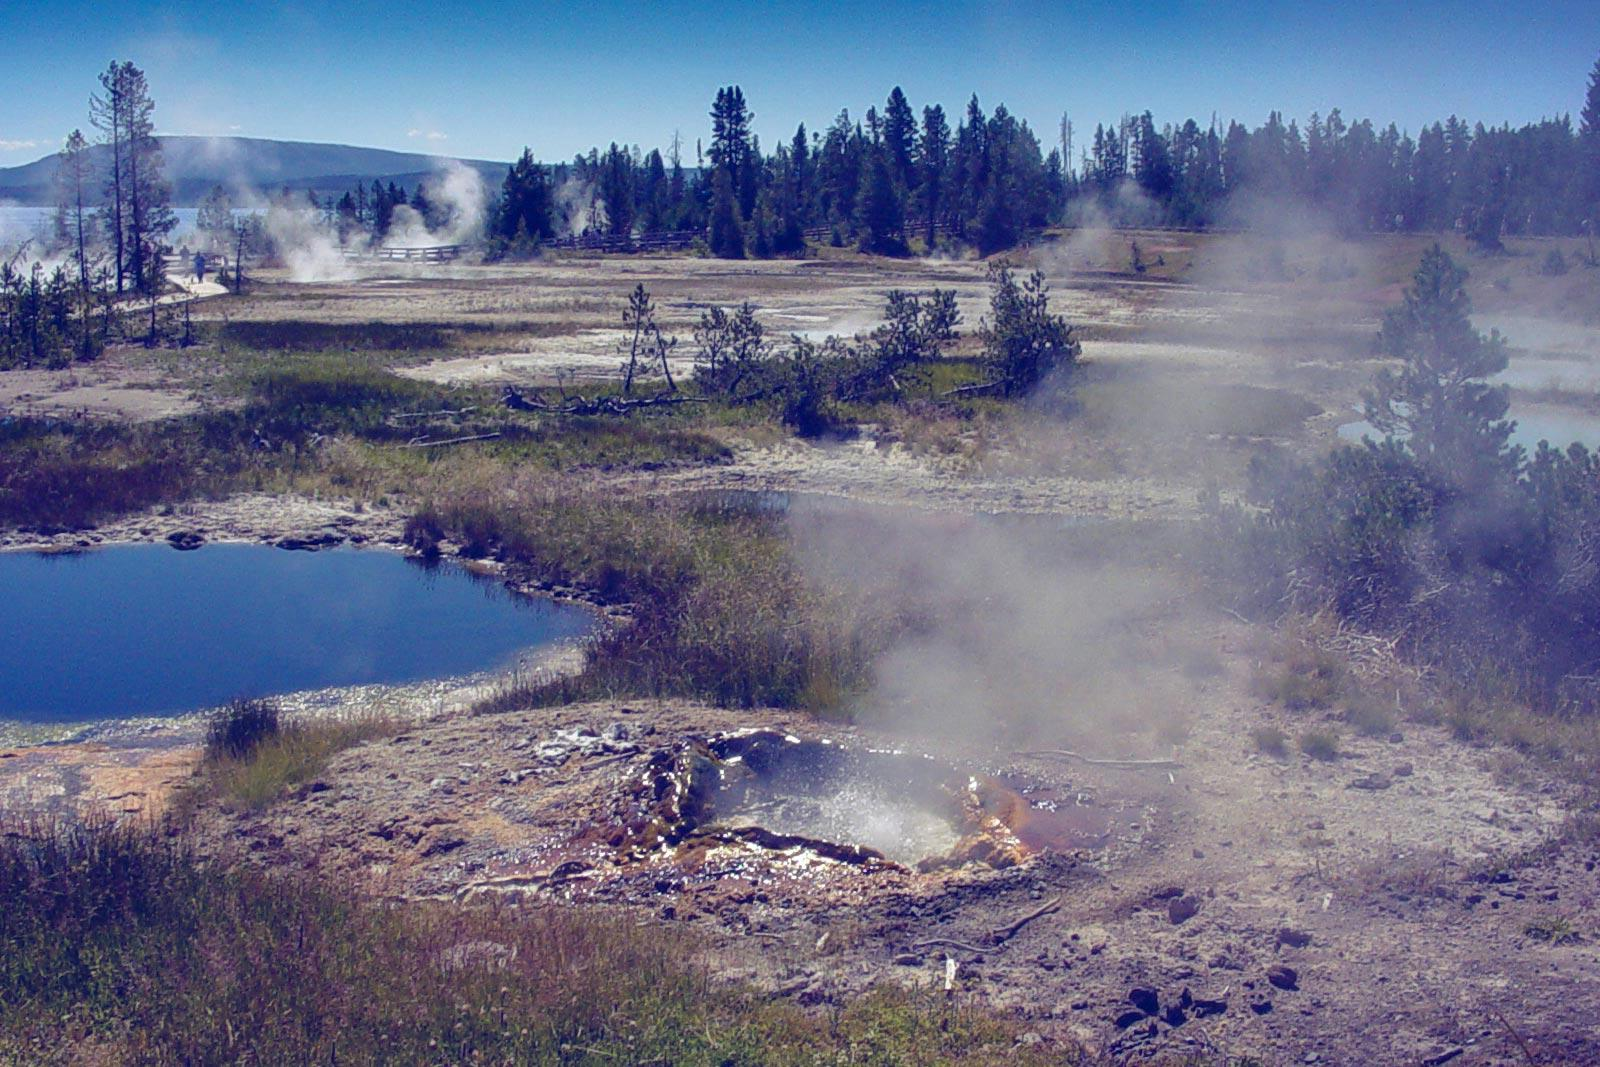 The super virus, Acidianus hospitalis Filamentous Virus 1, was first isolated in the hot springs at Yellowstone National Park.